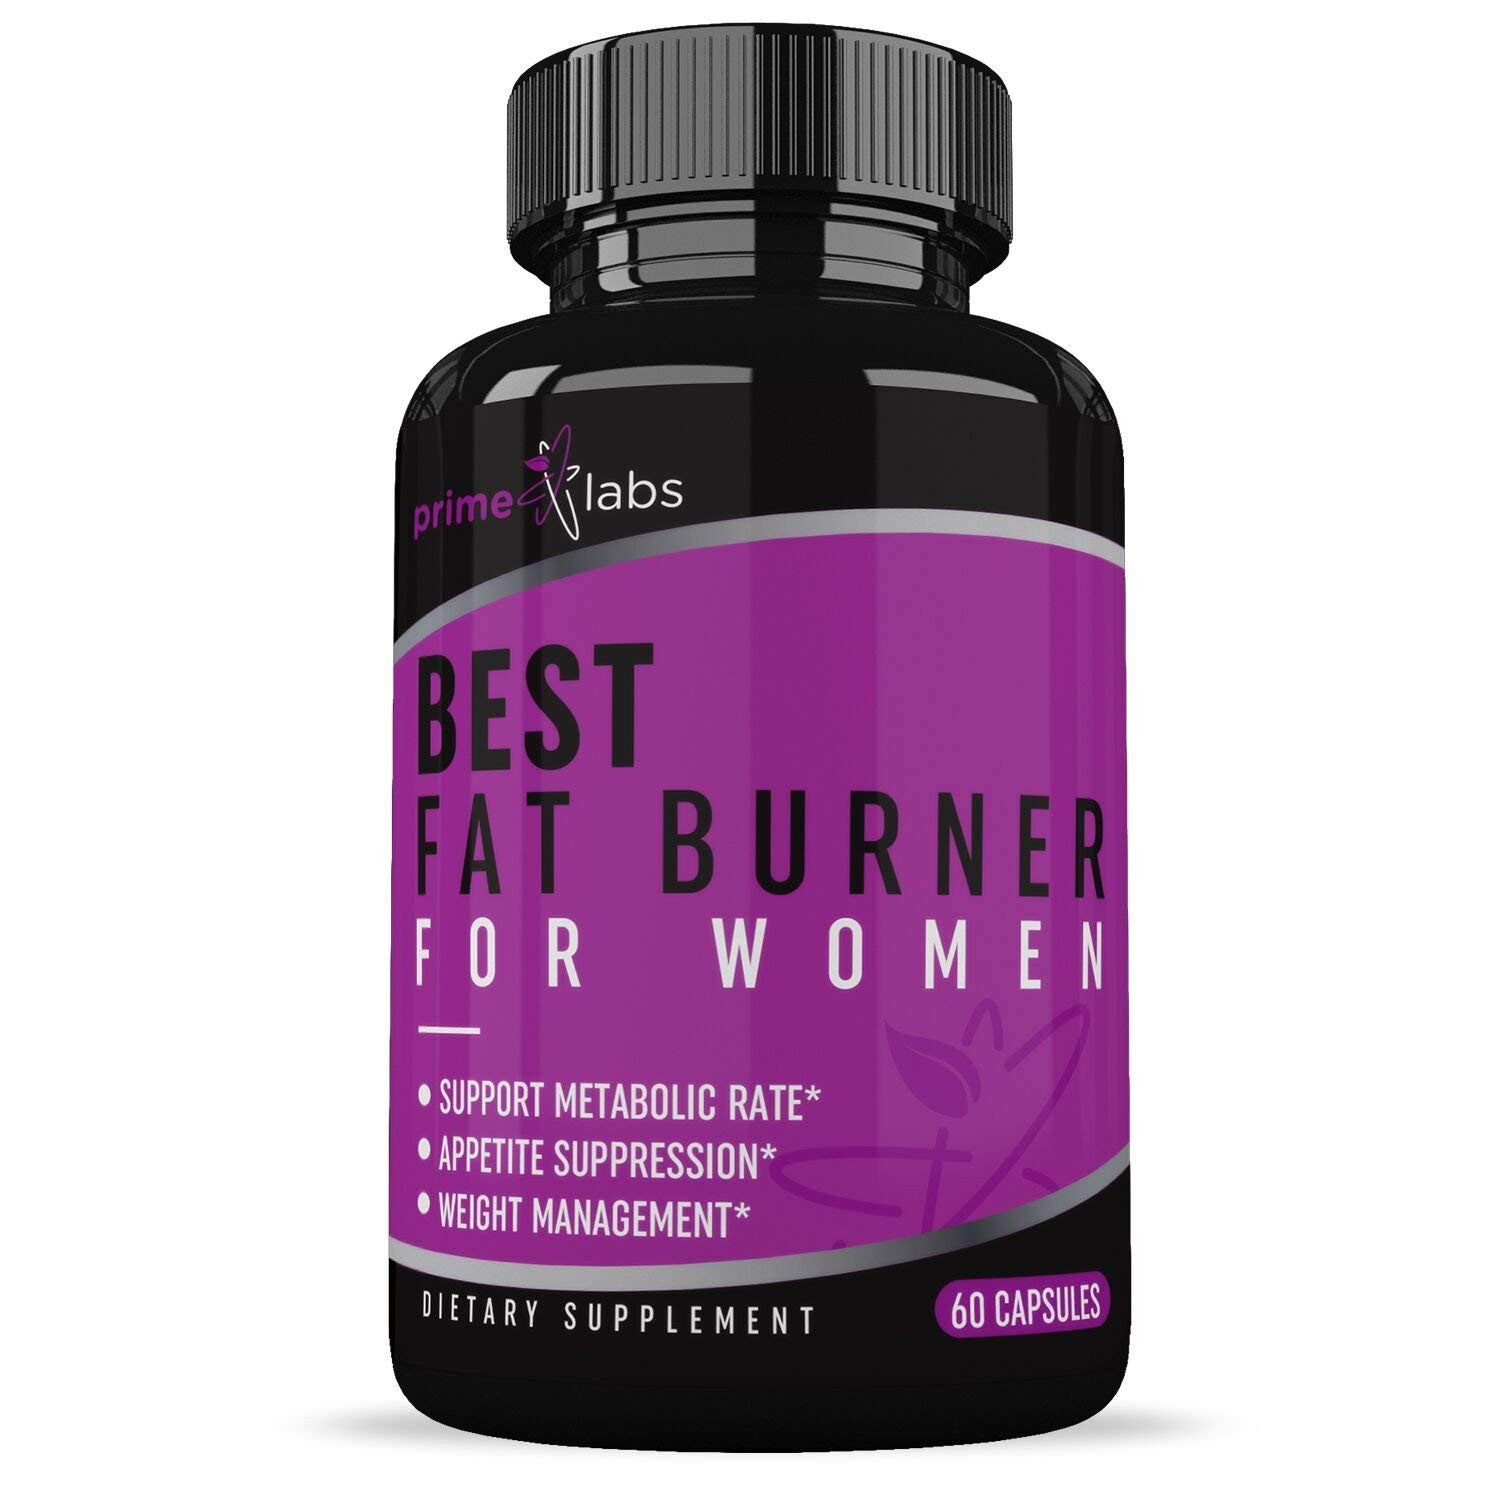 Weight Loss Supplements For Women Fat Burning  Diet Pills Extreme Thermogenic Fat Burner Weight Loss